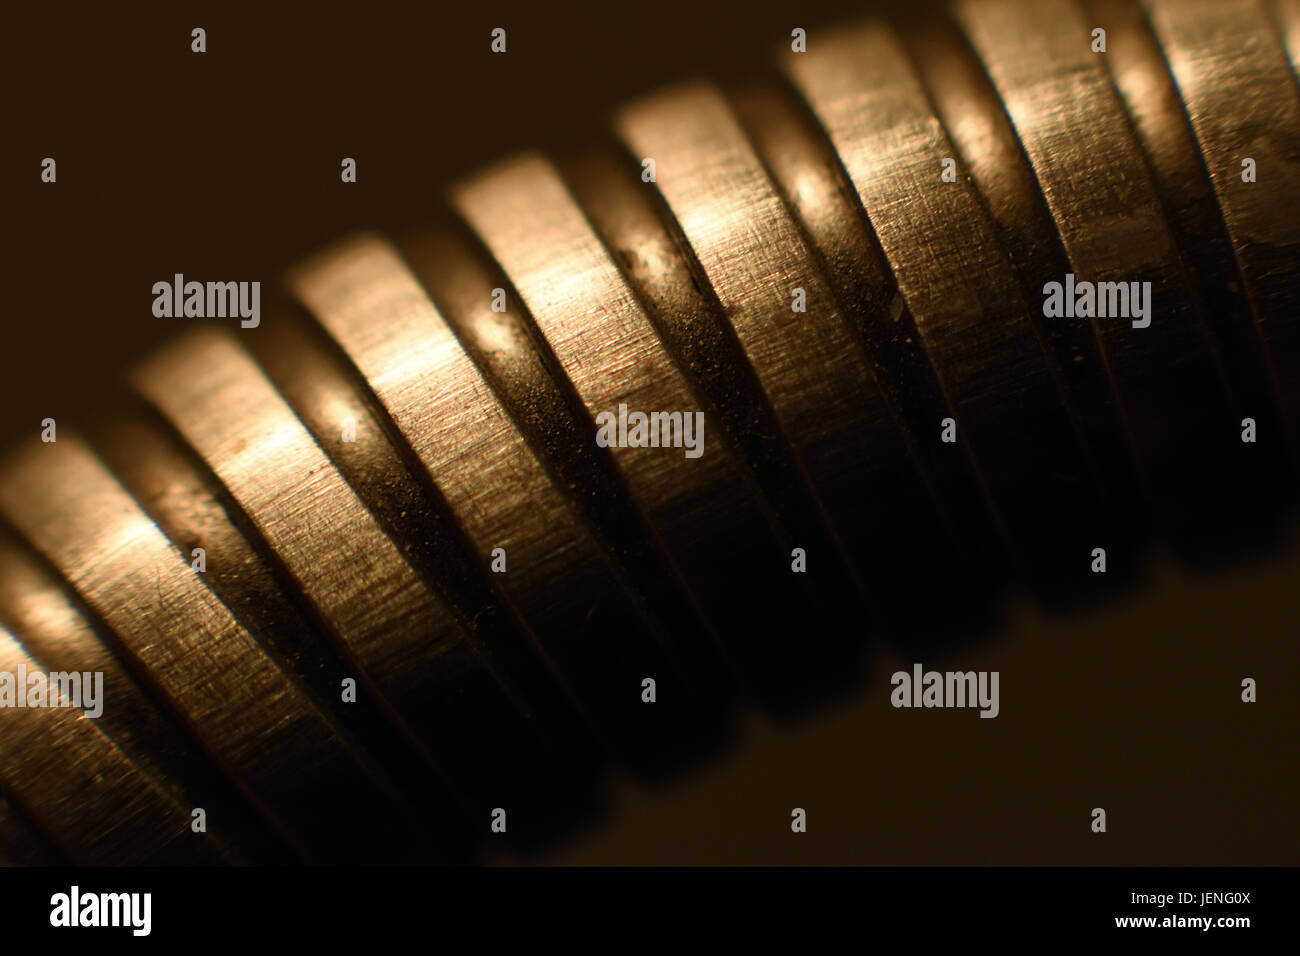 Abstract background with a metal spring emerging from the darkness. - Stock Image